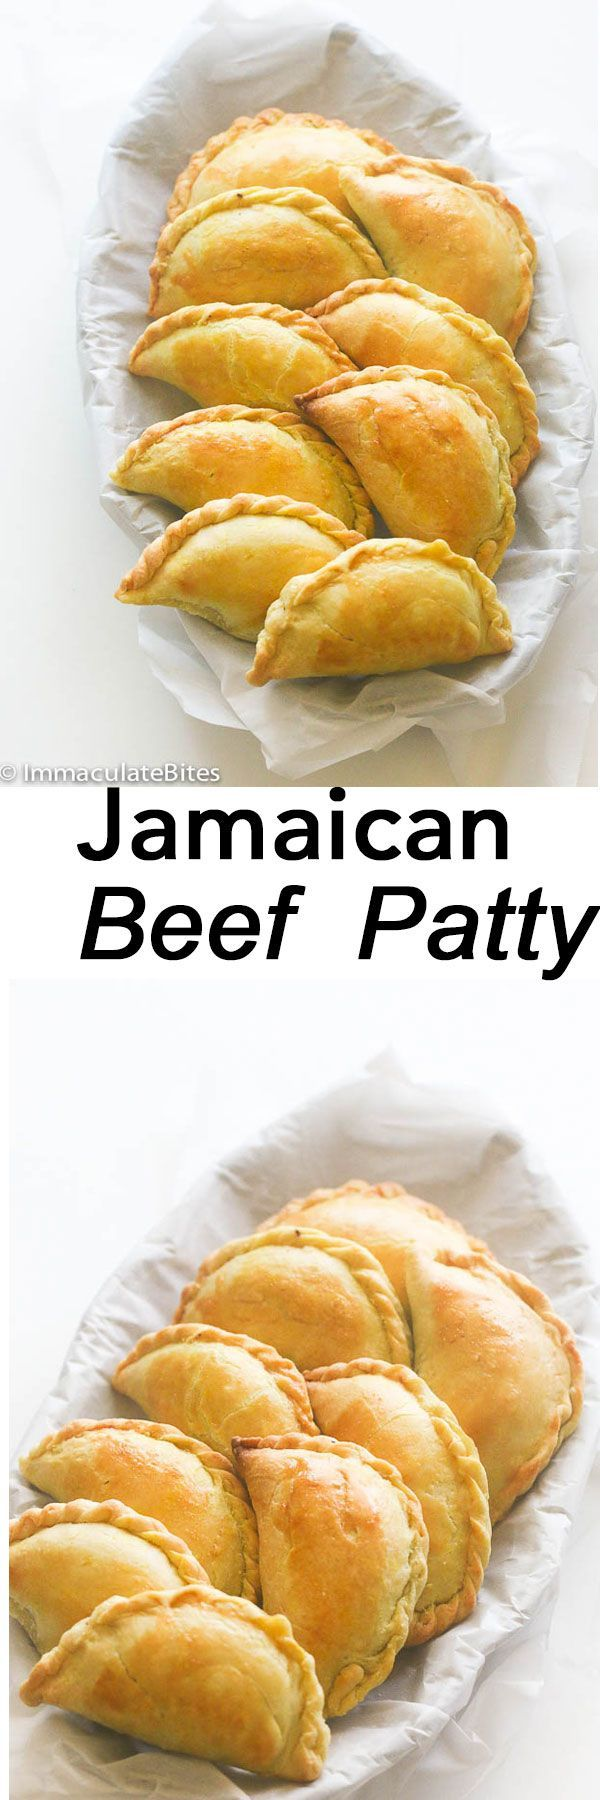 Jamaican Beef Patty – Spicy flavorful beef stuffed in an amazing super easy buttery dough.Comes together quickly and flies off the table. Simply Delicious!!! Ma (Baking Cauliflower Patties)